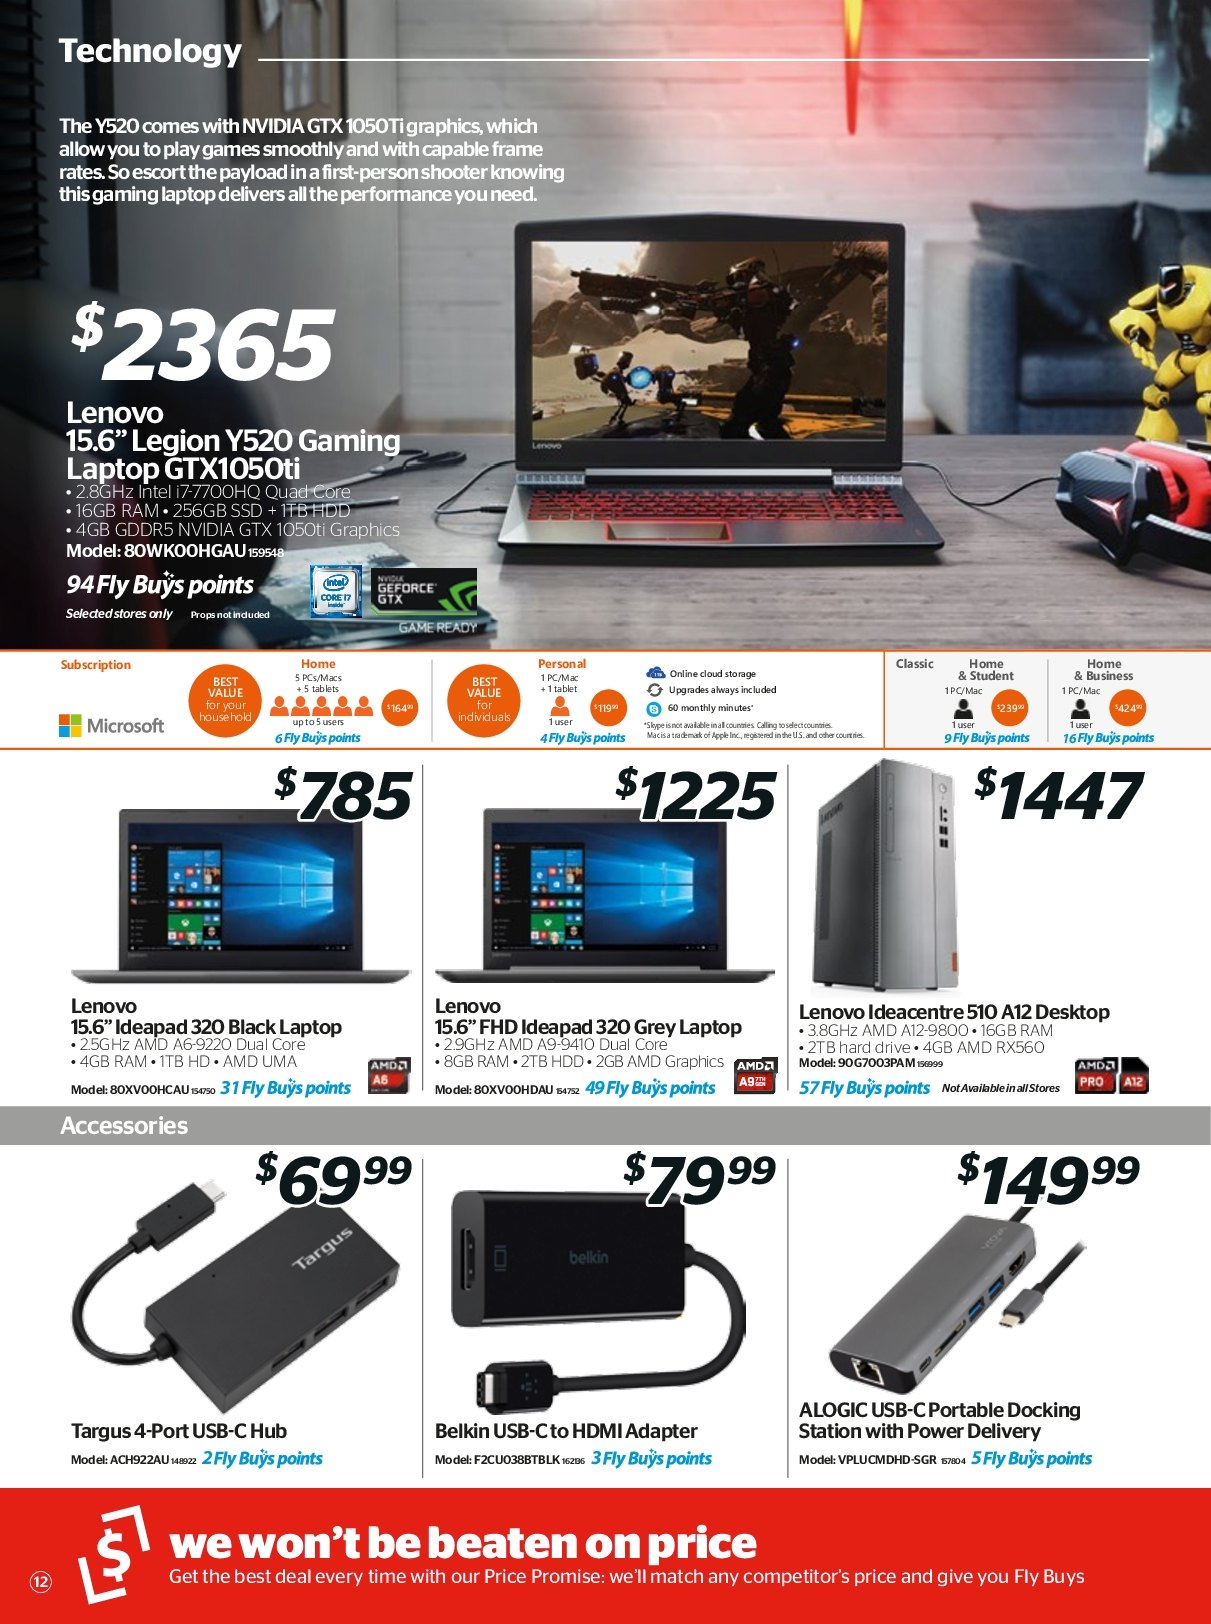 Noel Leeming mailer - 18.04.2018 - 24.04.2018 - Sales products - amd, frame, geforce, laptop, lenovo, microsoft, usb, hard drive, hdd, hdmi, intel, nvidia, ssd, tablets. Page 12.